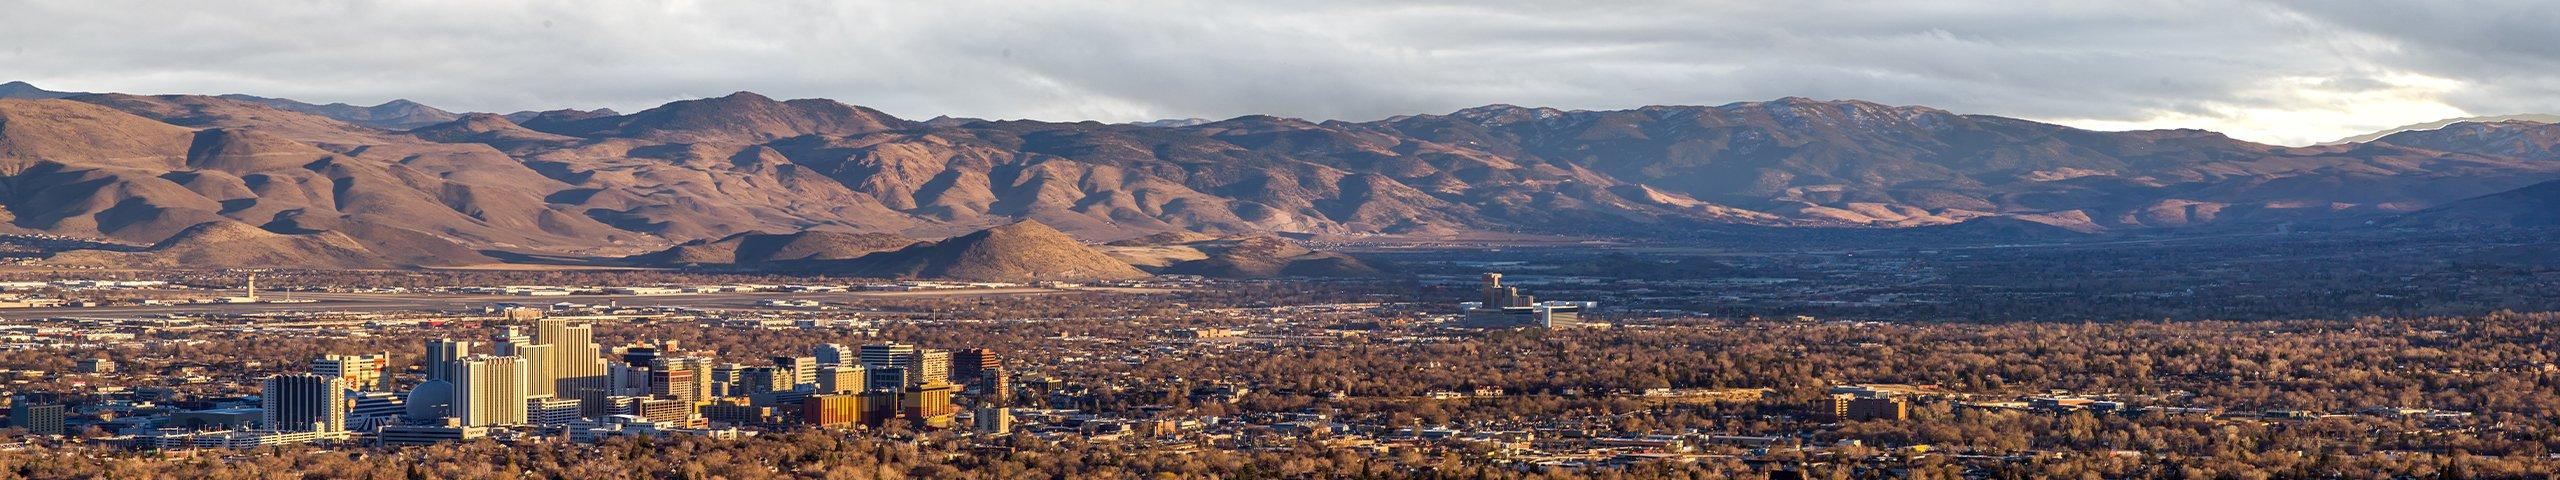 skyline and mountains of reno nevada